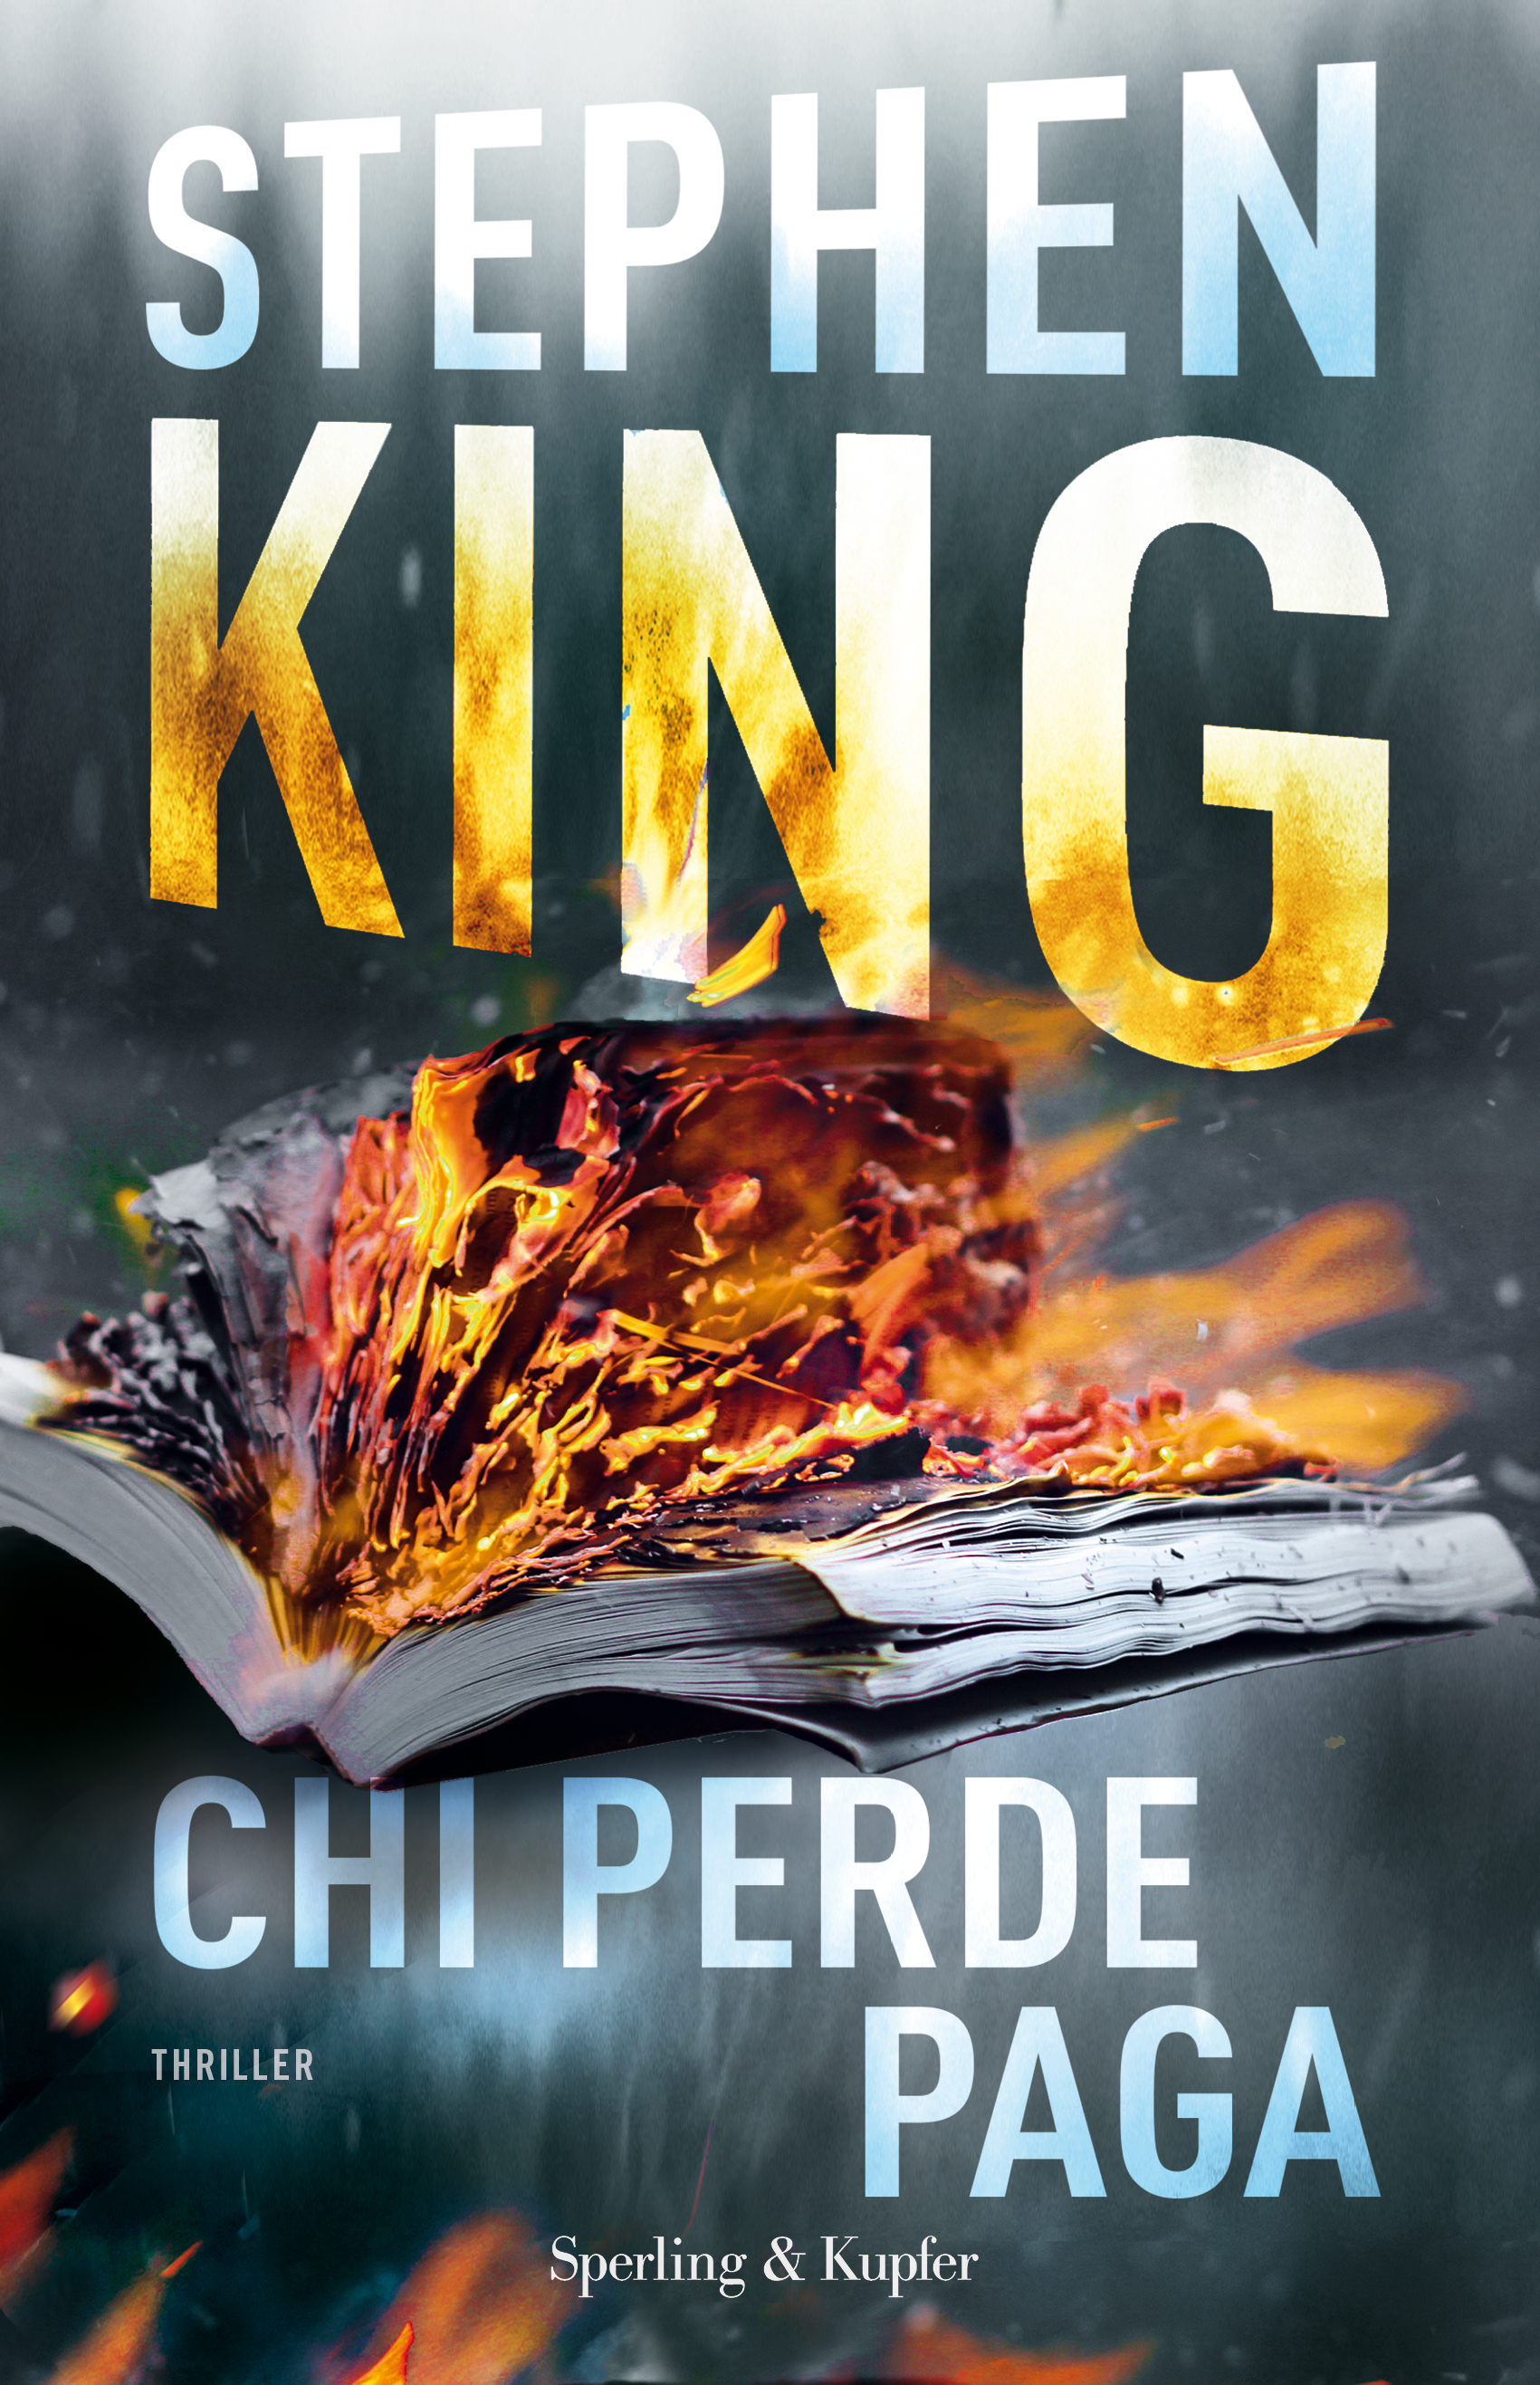 https://www.amazon.it/Chi-perde-paga-Stephen-King/dp/886836347X/ref=as_sl_pc_tf_til?tag=malcolm07-21&linkCode=w00&linkId=7275f7a7d31b5324fdc62ca2b28f640e&creativeASIN=886836347X